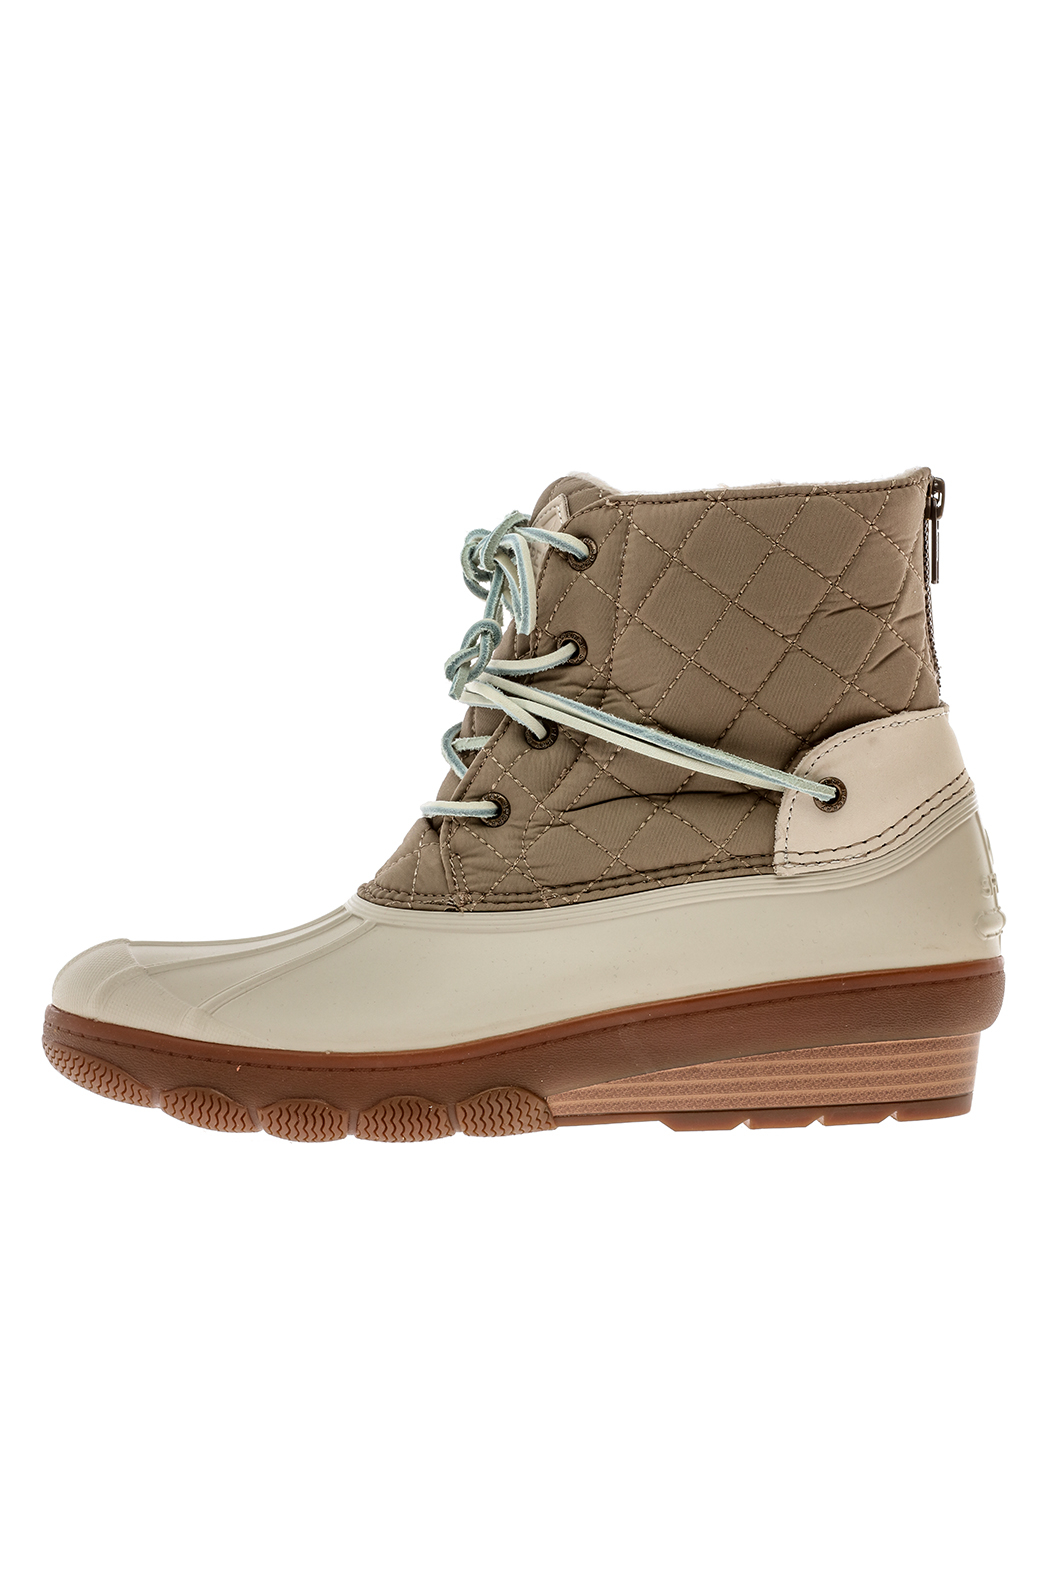 Sperry Saltwater Duck Boots - Front Full Image